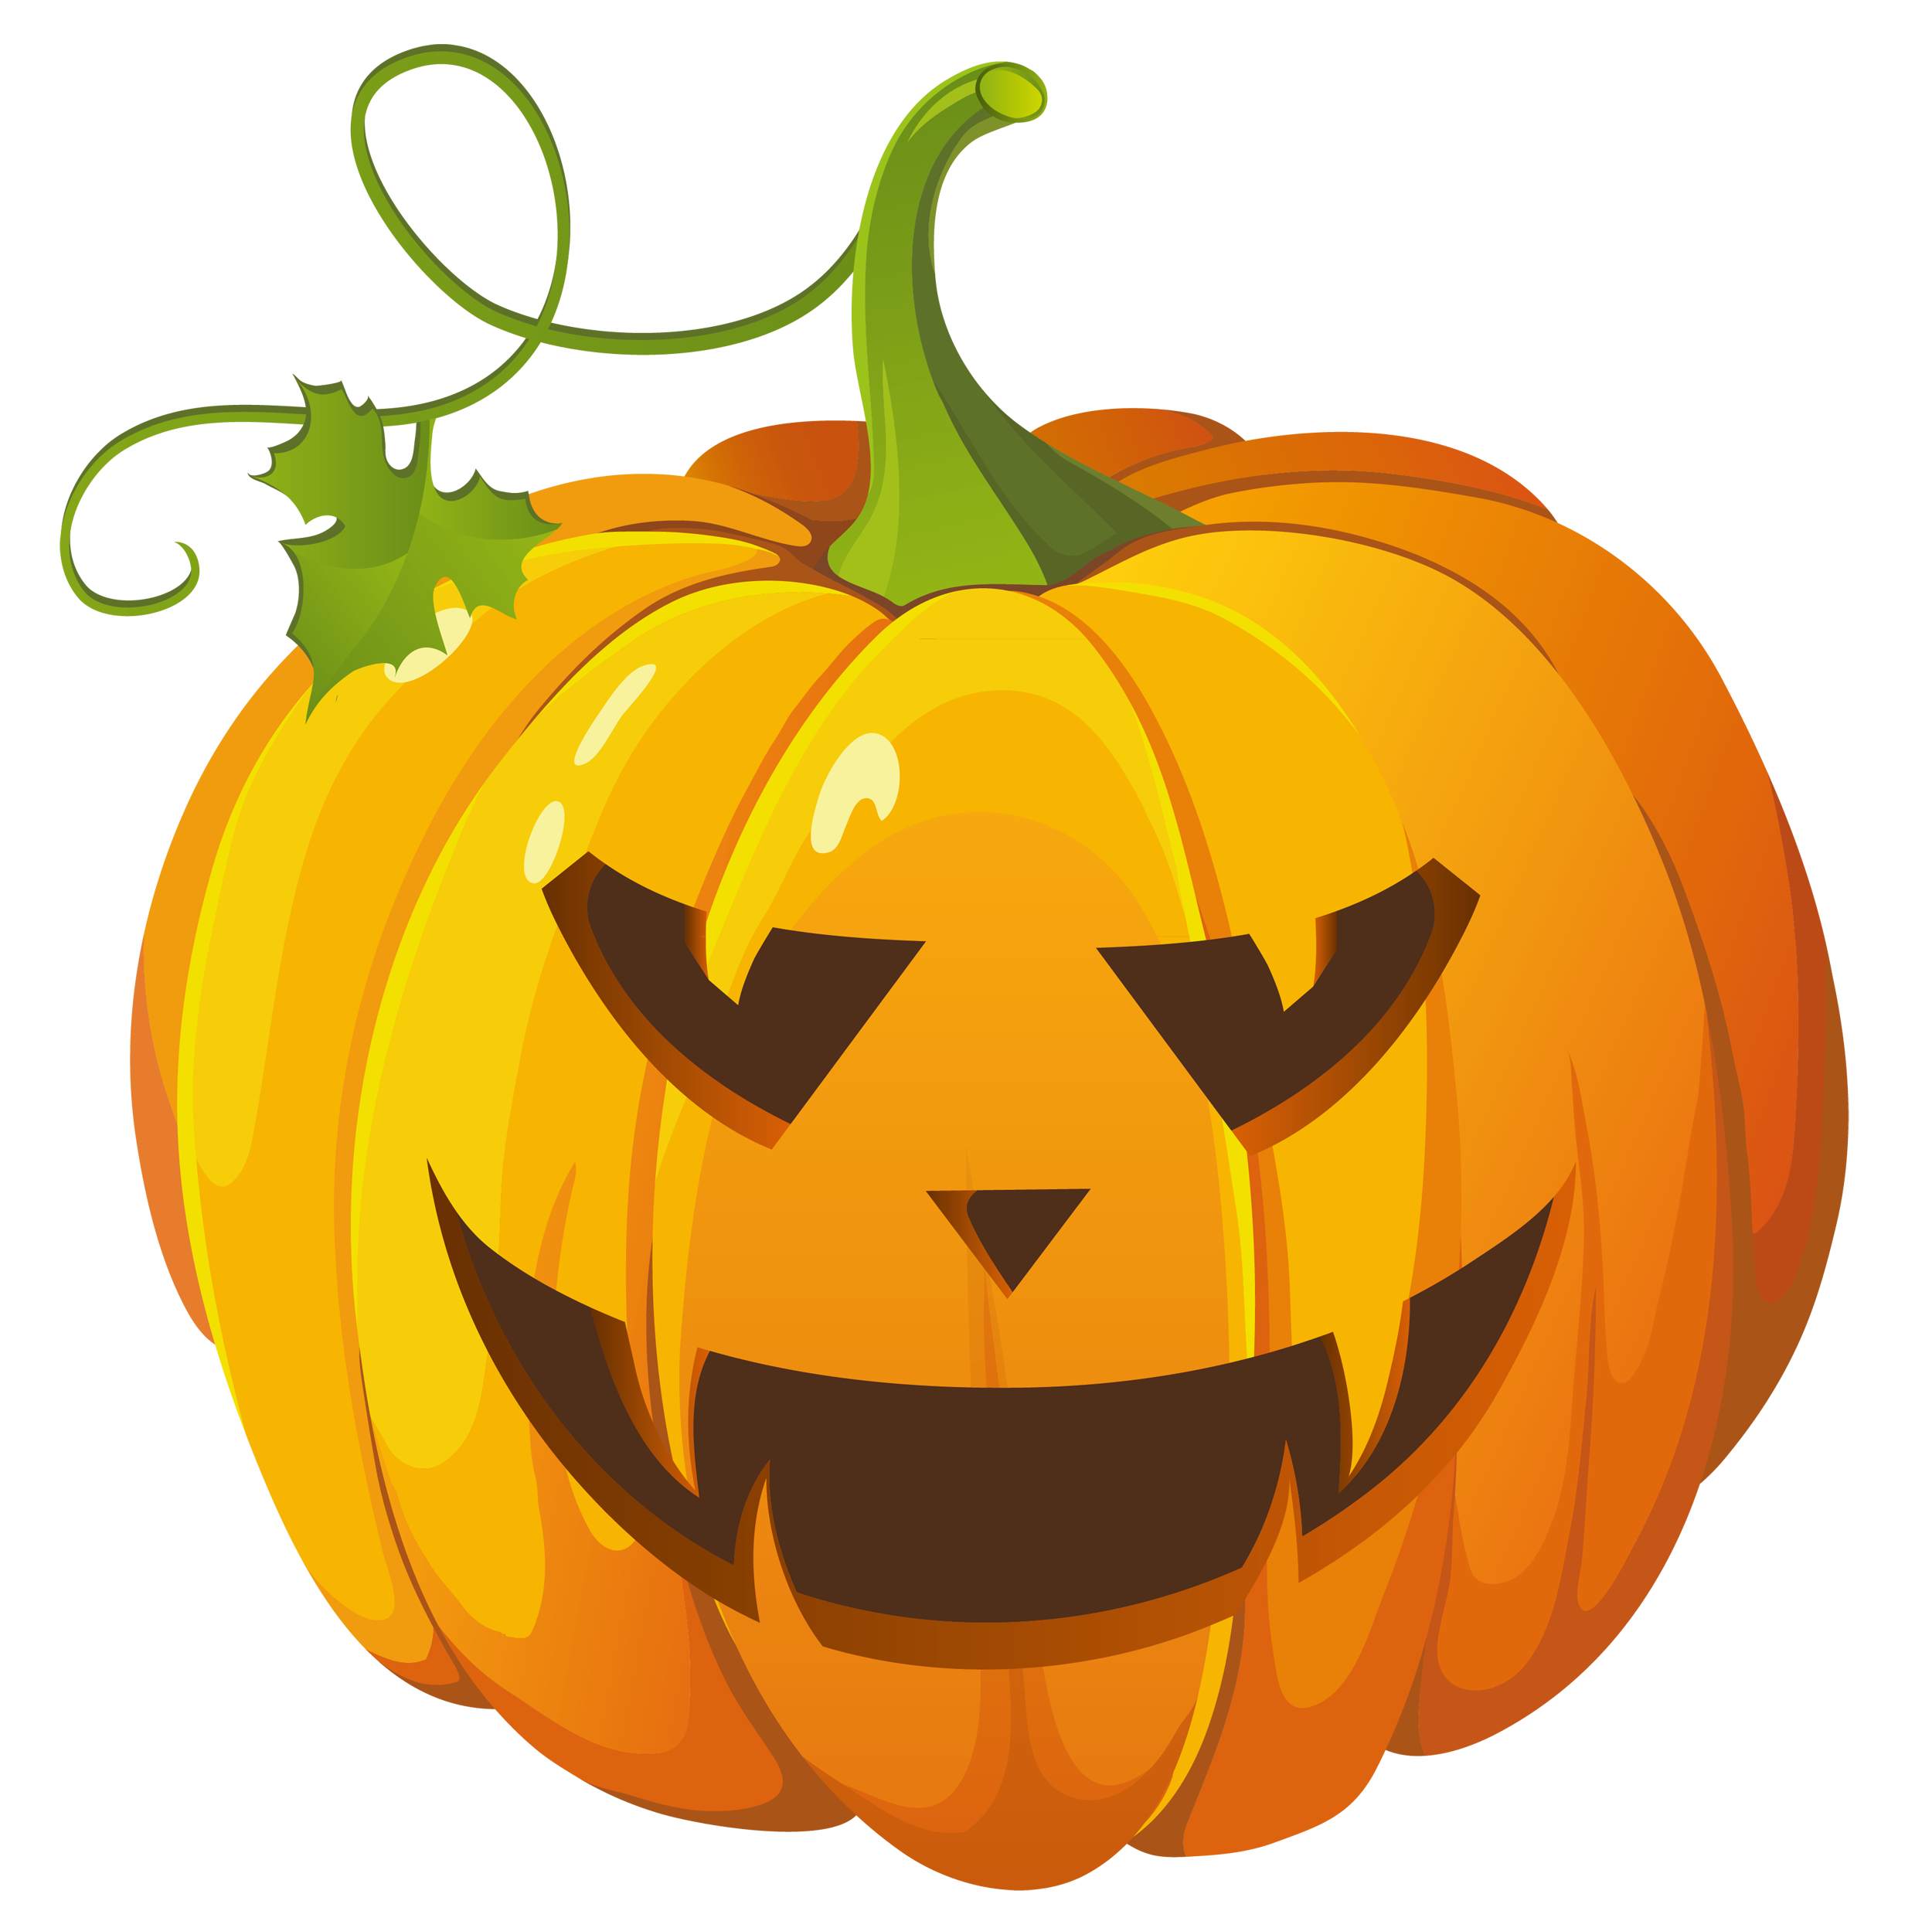 Scared pumpkin clipart graphic download Free Pumpkin Clipart at GetDrawings.com | Free for personal use Free ... graphic download